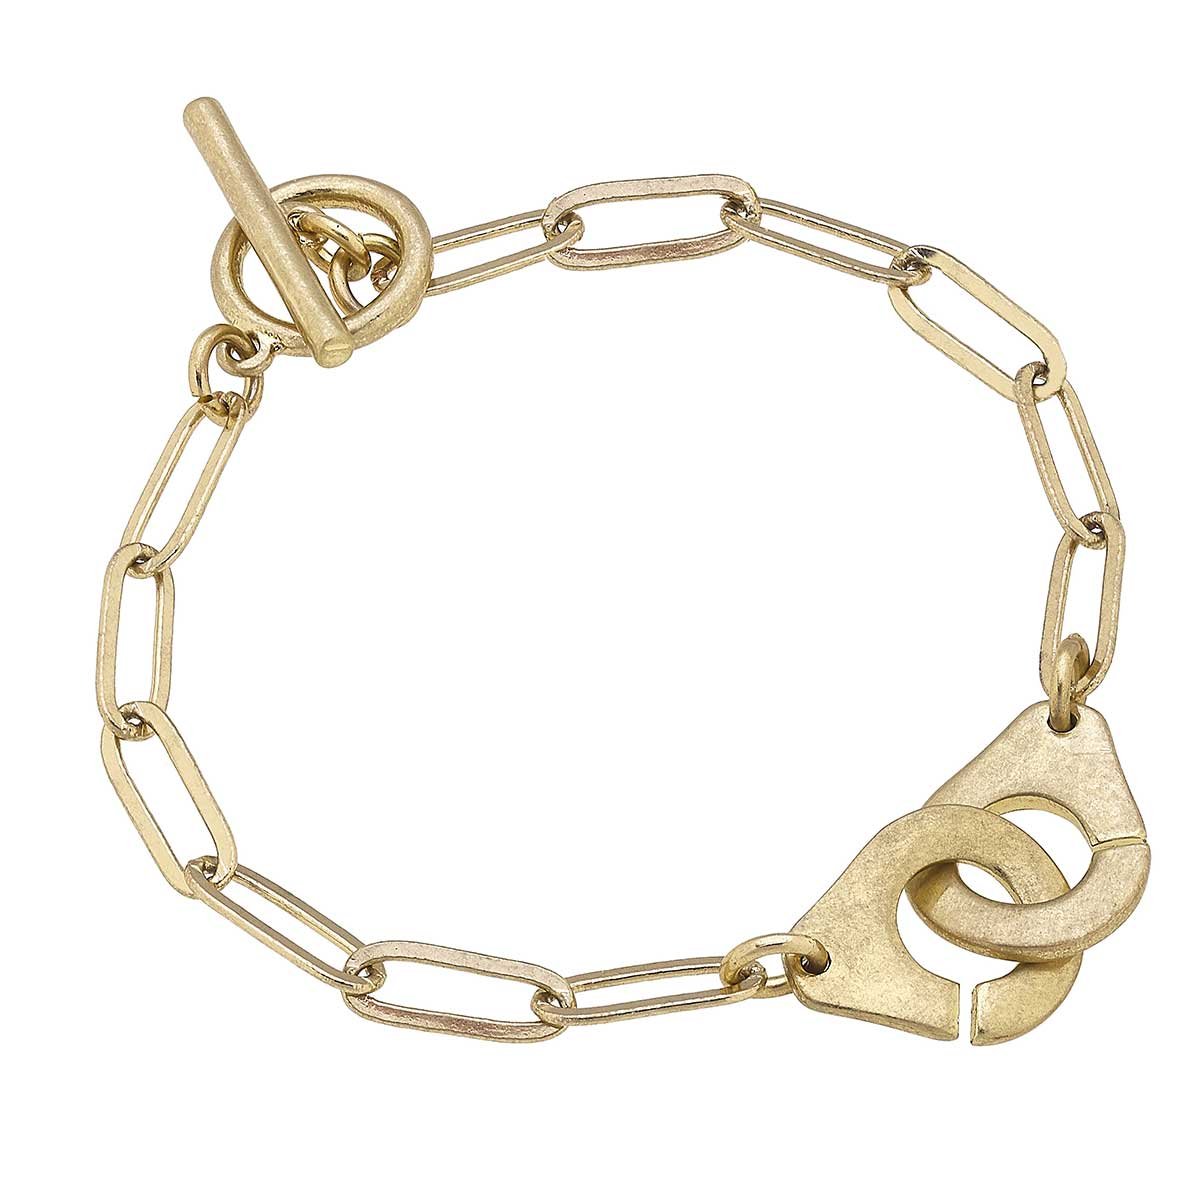 Londyn Handcuff Paperclip Chain T-Bar Bracelet in Worn Gold